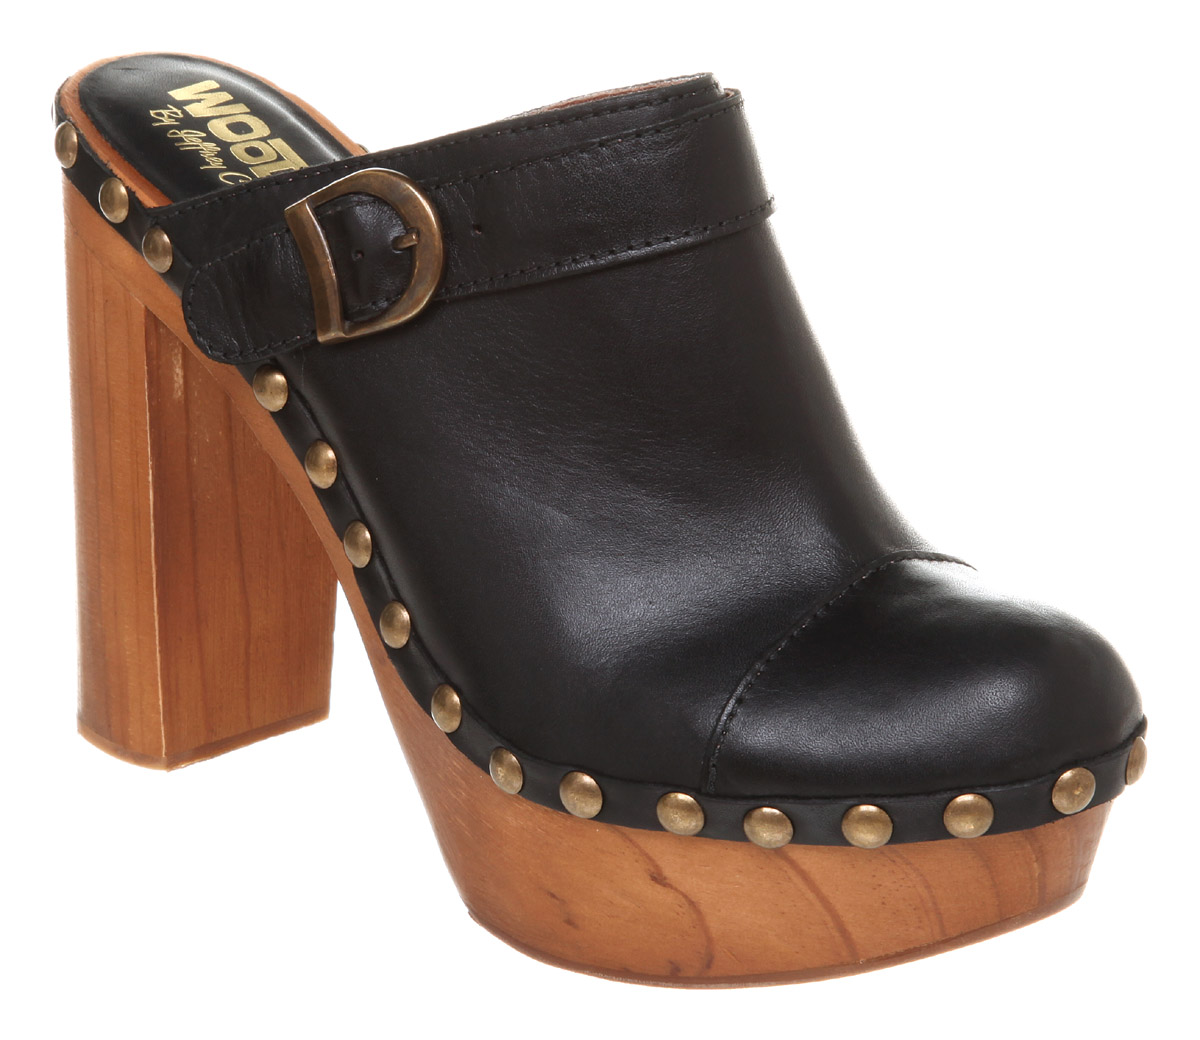 Black Clogs Sale: Save Up to 70% Off! Shop qrqceh.tk's huge selection of Black Clogs - Over styles available. FREE Shipping & Exchanges, and a .